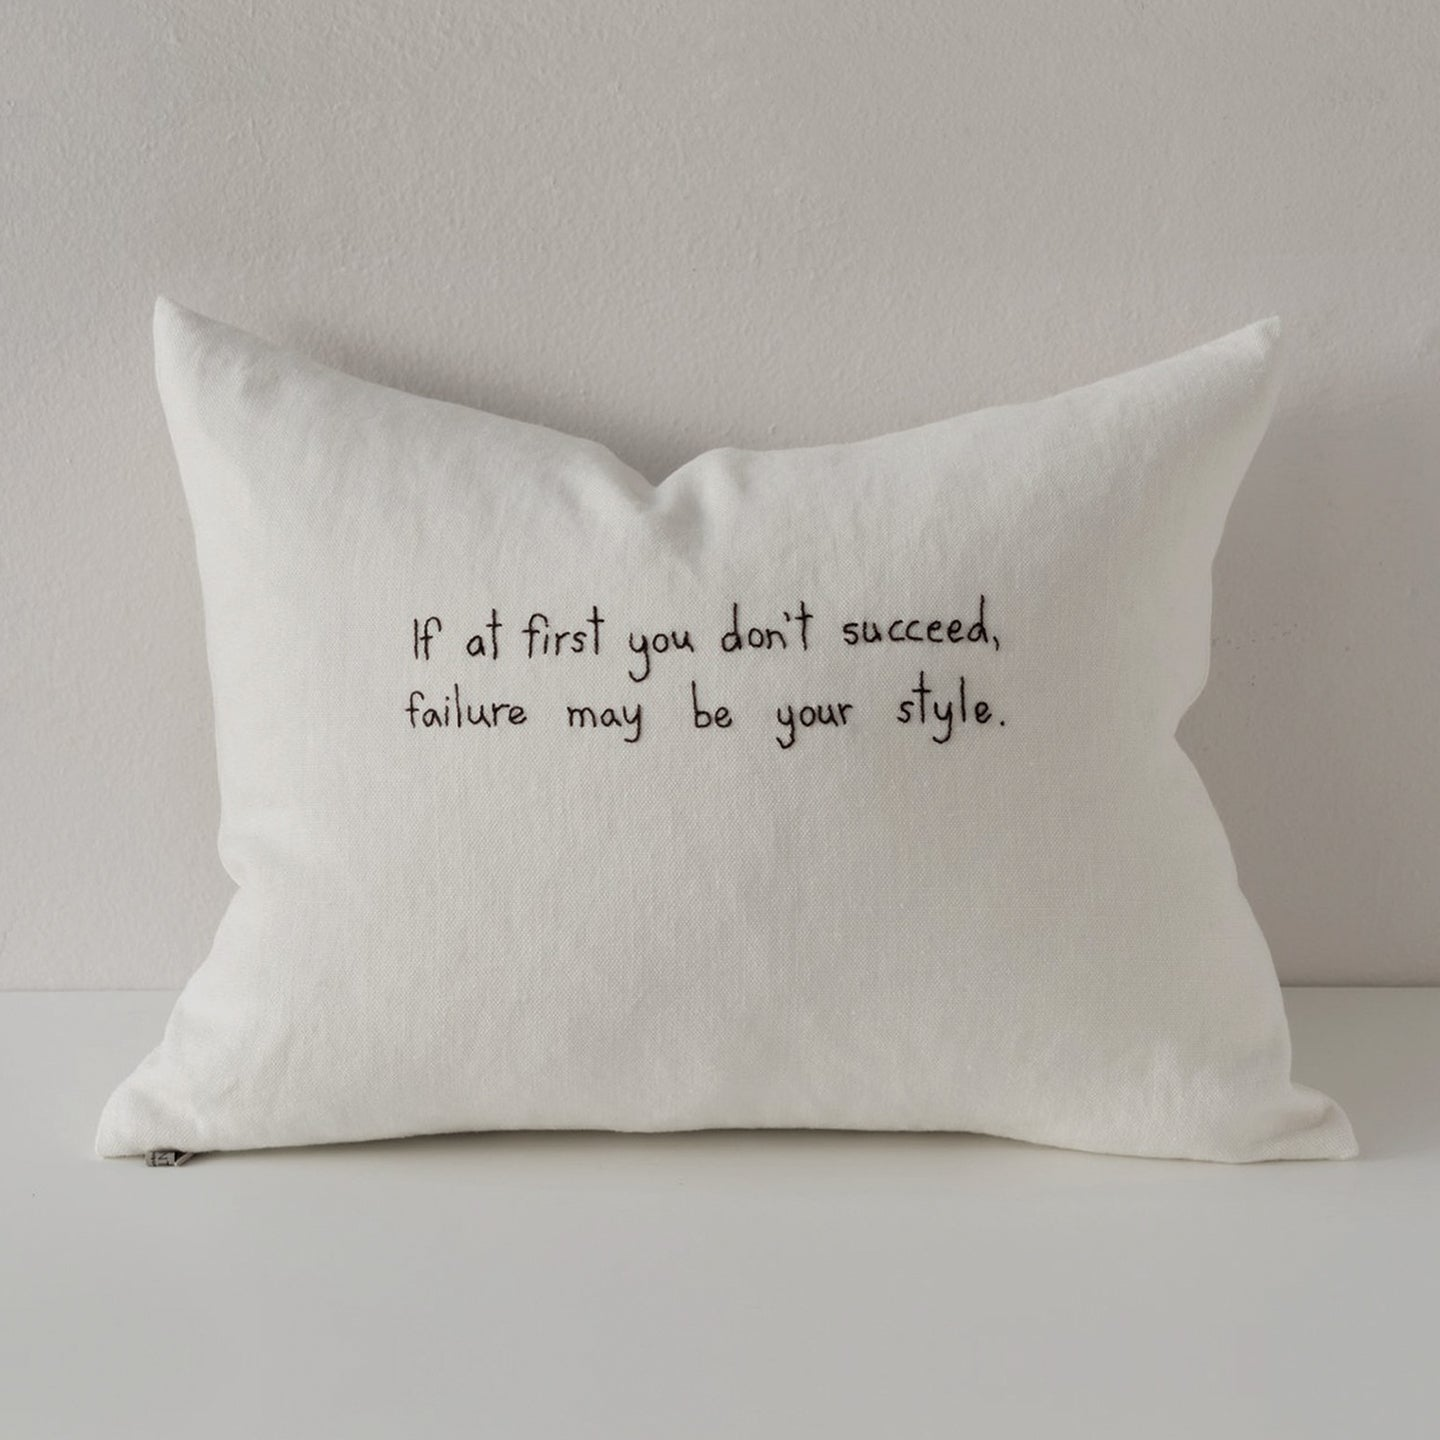 "Text Collection, Embroidered Pillow. Quentin Crisp, ""If at first you don't succeed..."""